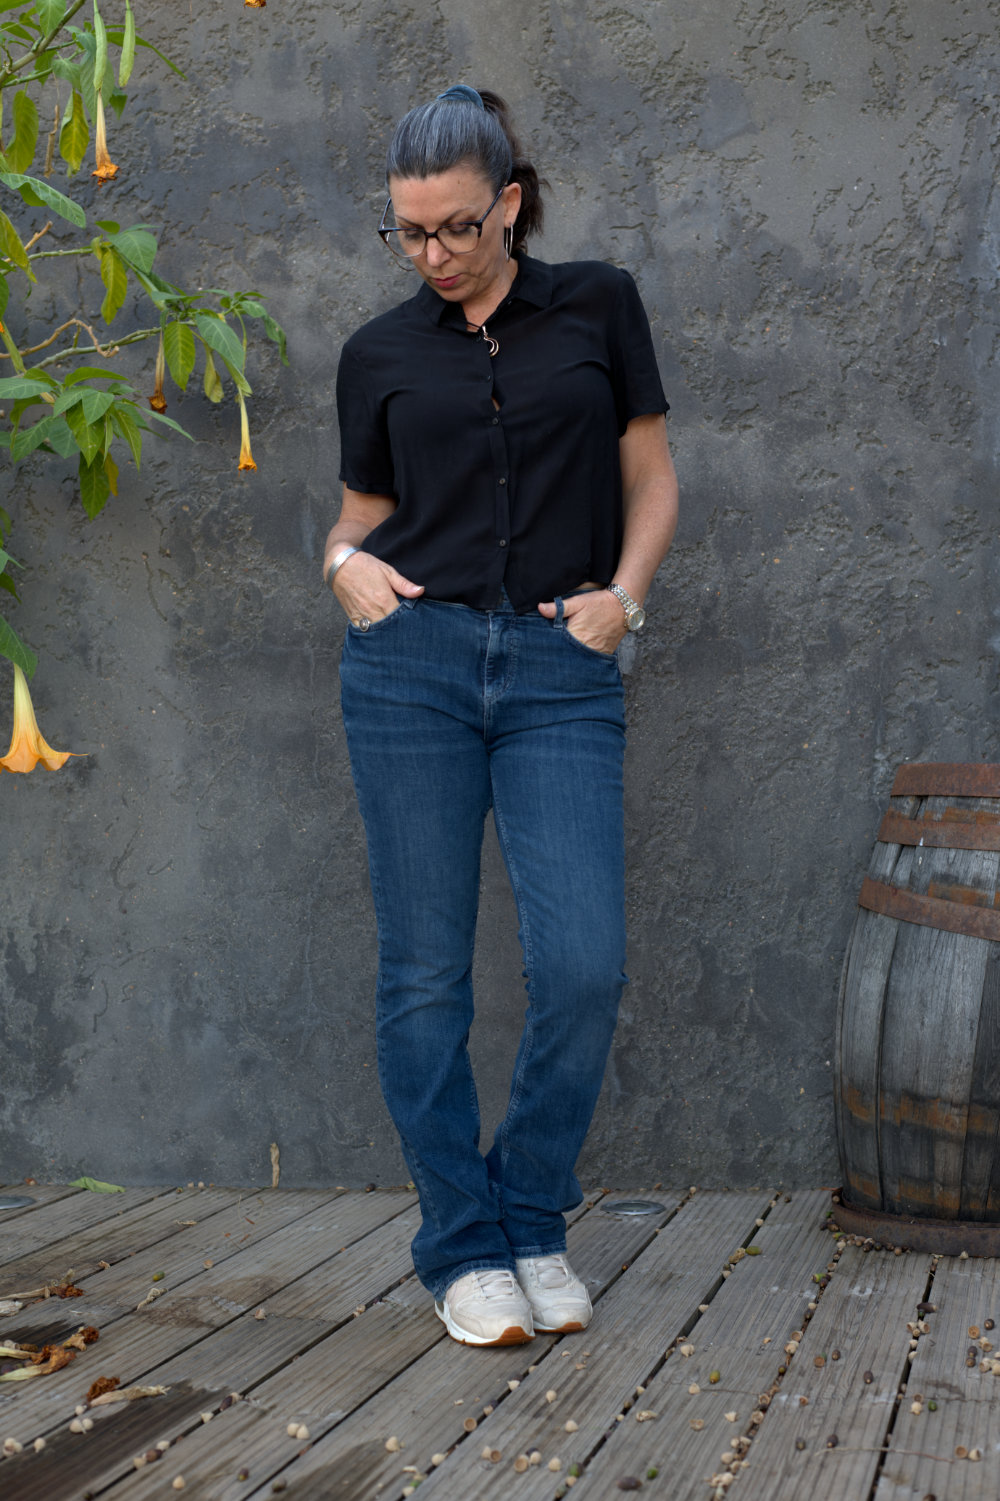 new bootcut jeans